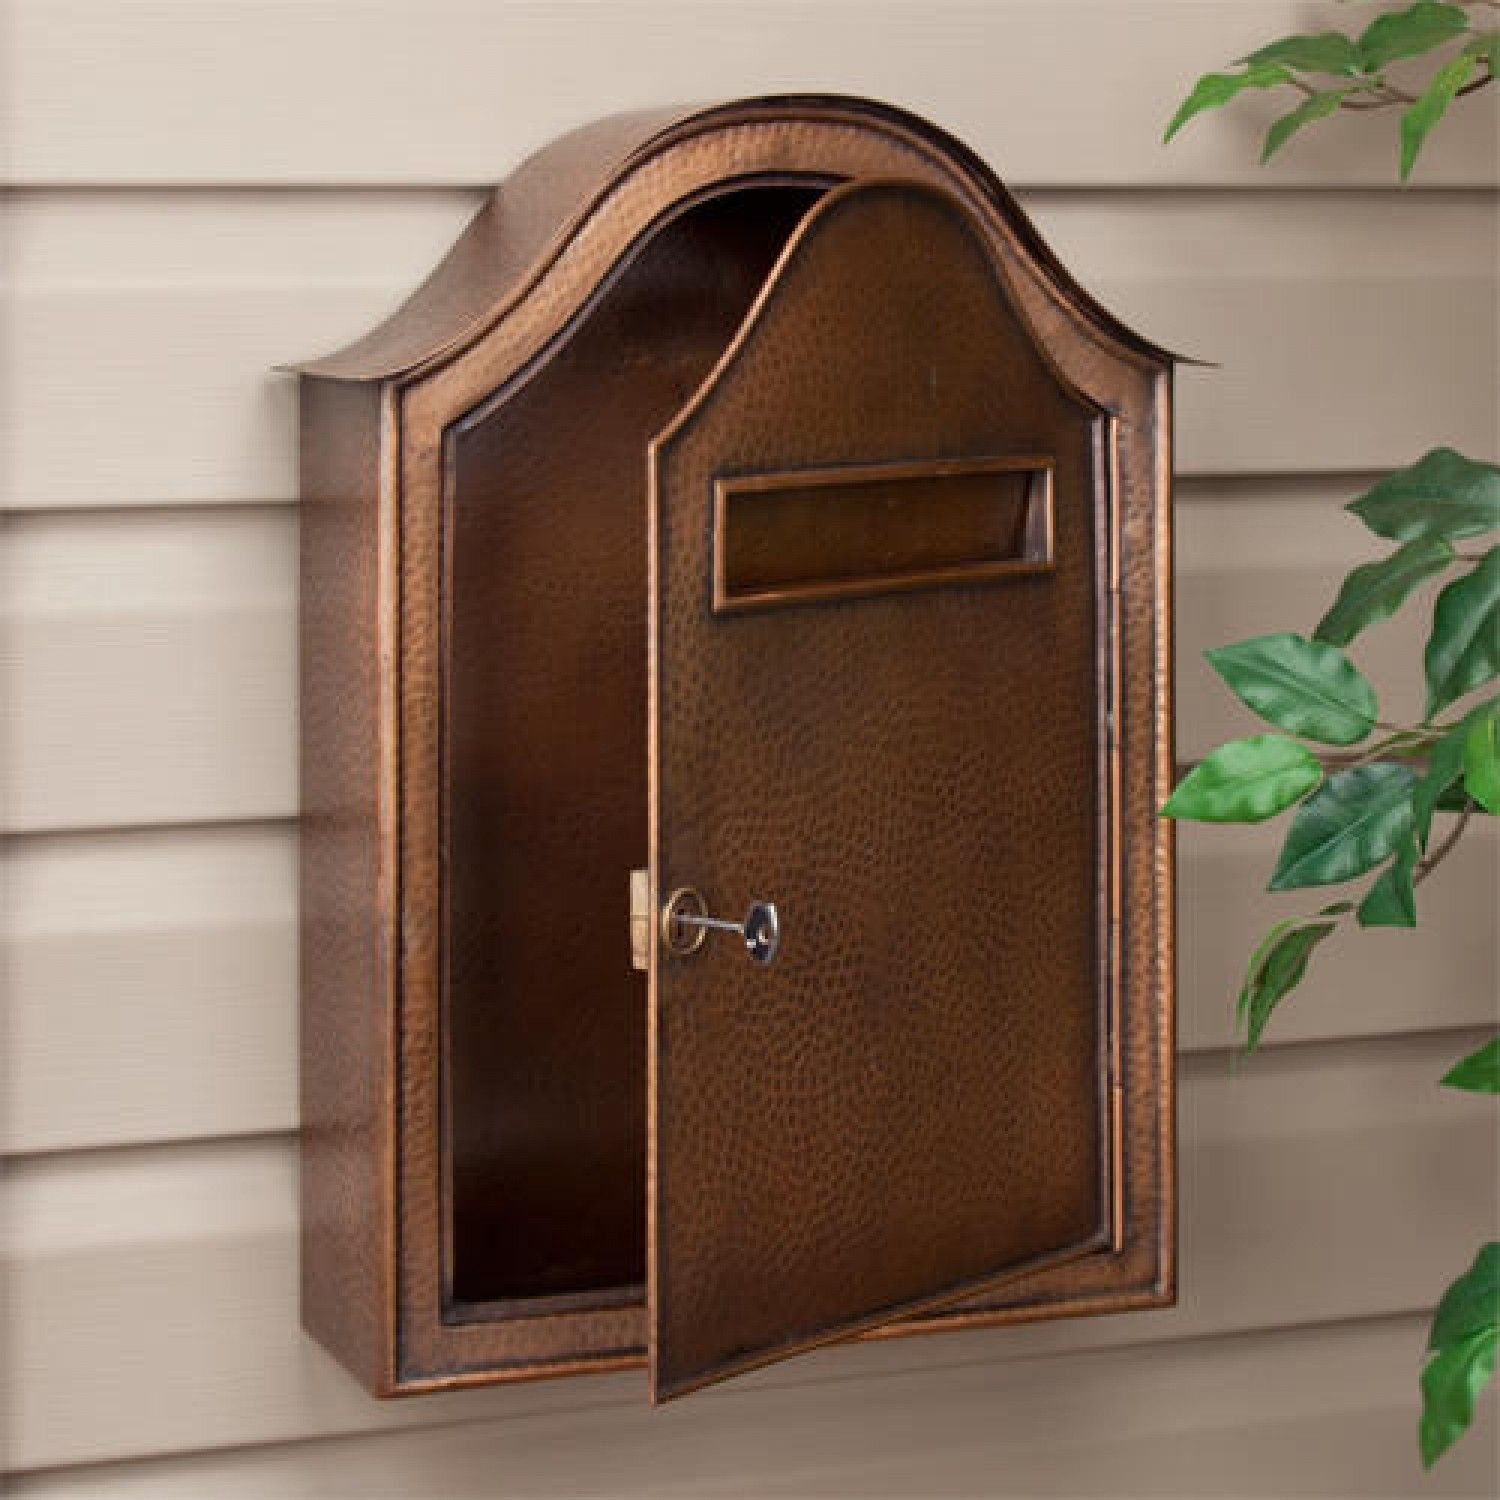 Interesting Exterior Home Design With Wall Mount Mailbox Interesting Exterior Wall Mount Mailbox Mounted Mailbox Large Mailbox